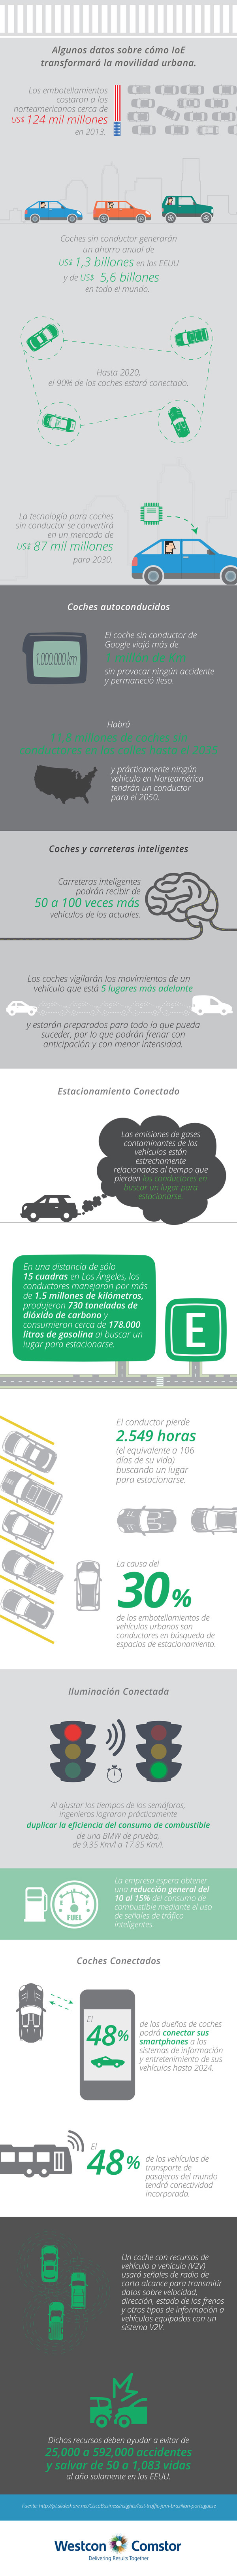 infografico-internet-of-everything-y-el-ultimo-embotellamiento